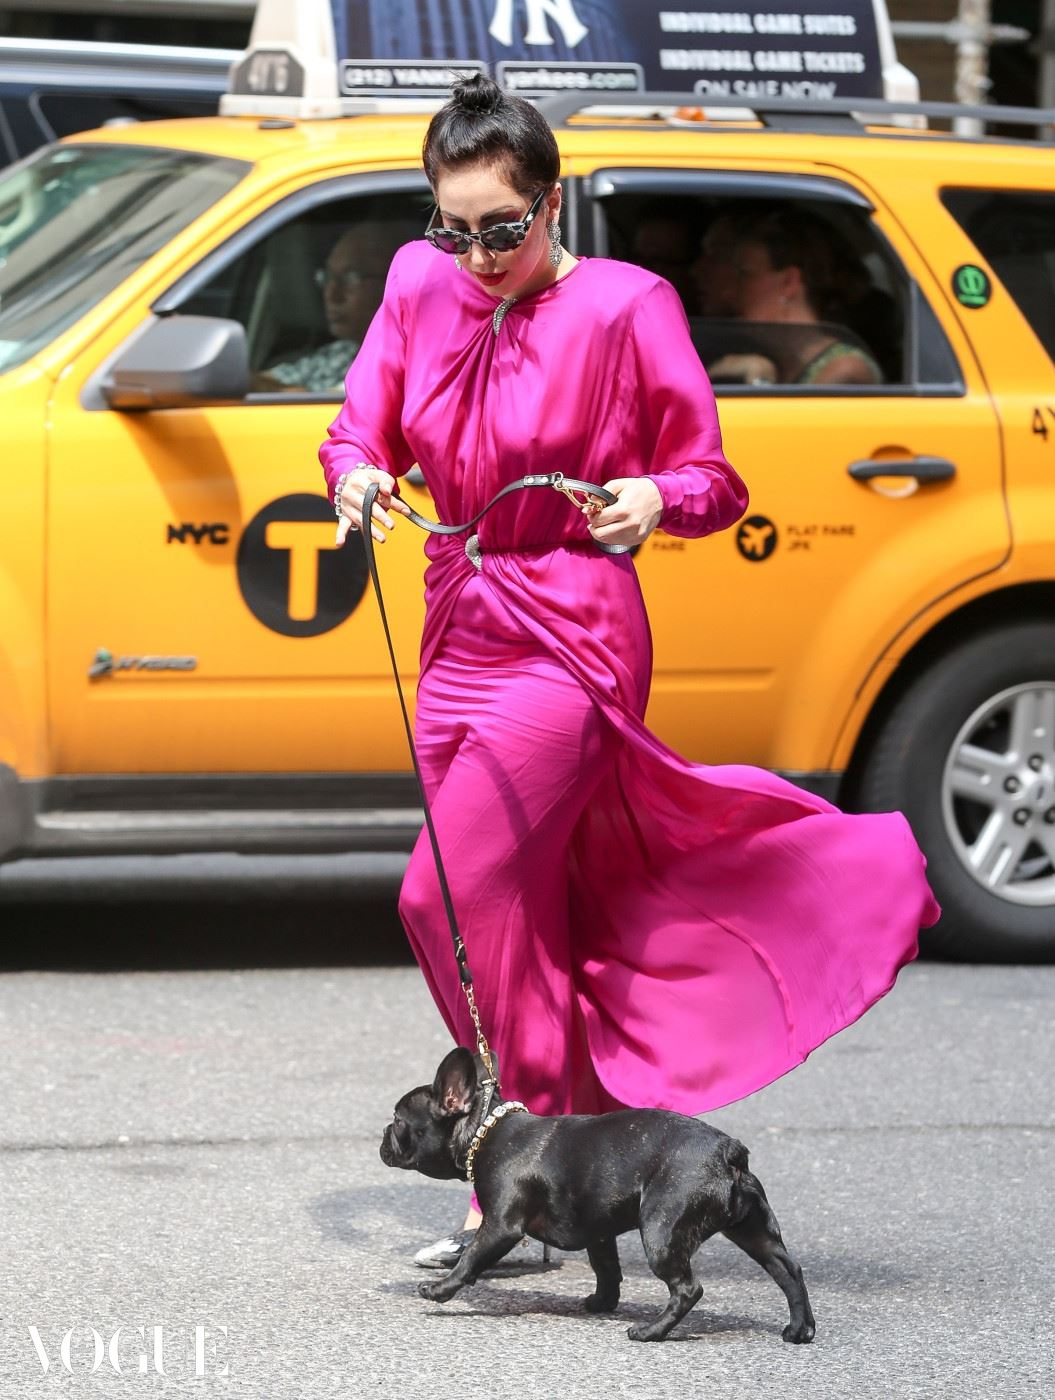 Lady Gaga steps out with her dog Asia wearing all diamonds in New York City. Pictured: Lady Gaga and Asia Ref: SPL809962  270714   Picture by: Santi/Splash News Splash News and Pictures Los Angeles:310-821-2666 New York:212-619-2666 London:870-934-2666 photodesk@splashnews.com